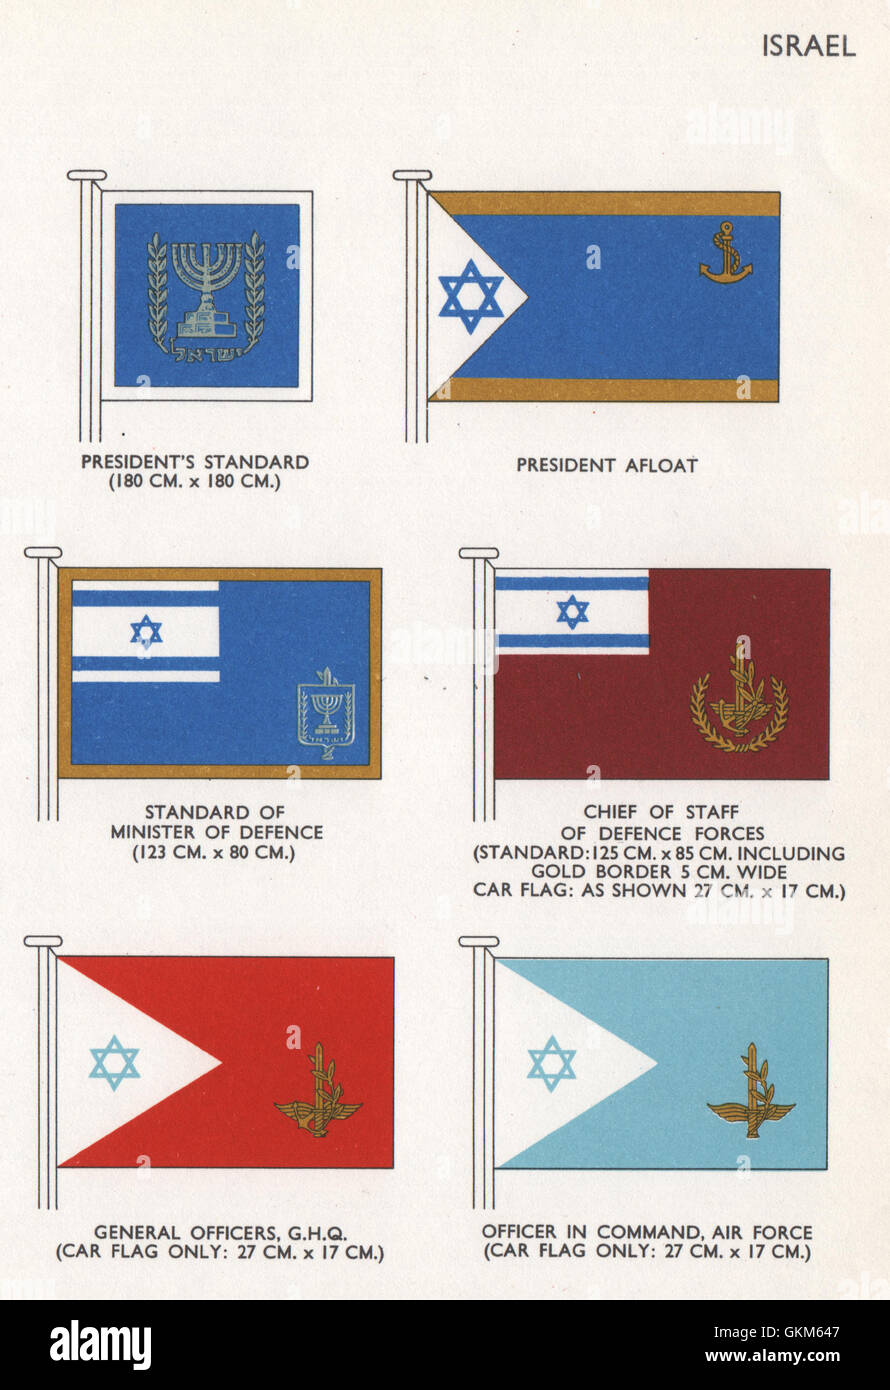 ISRAEL FLAGS President's Standard/Afloat Minister of Defence Chief of Staff 1958 Stock Photo